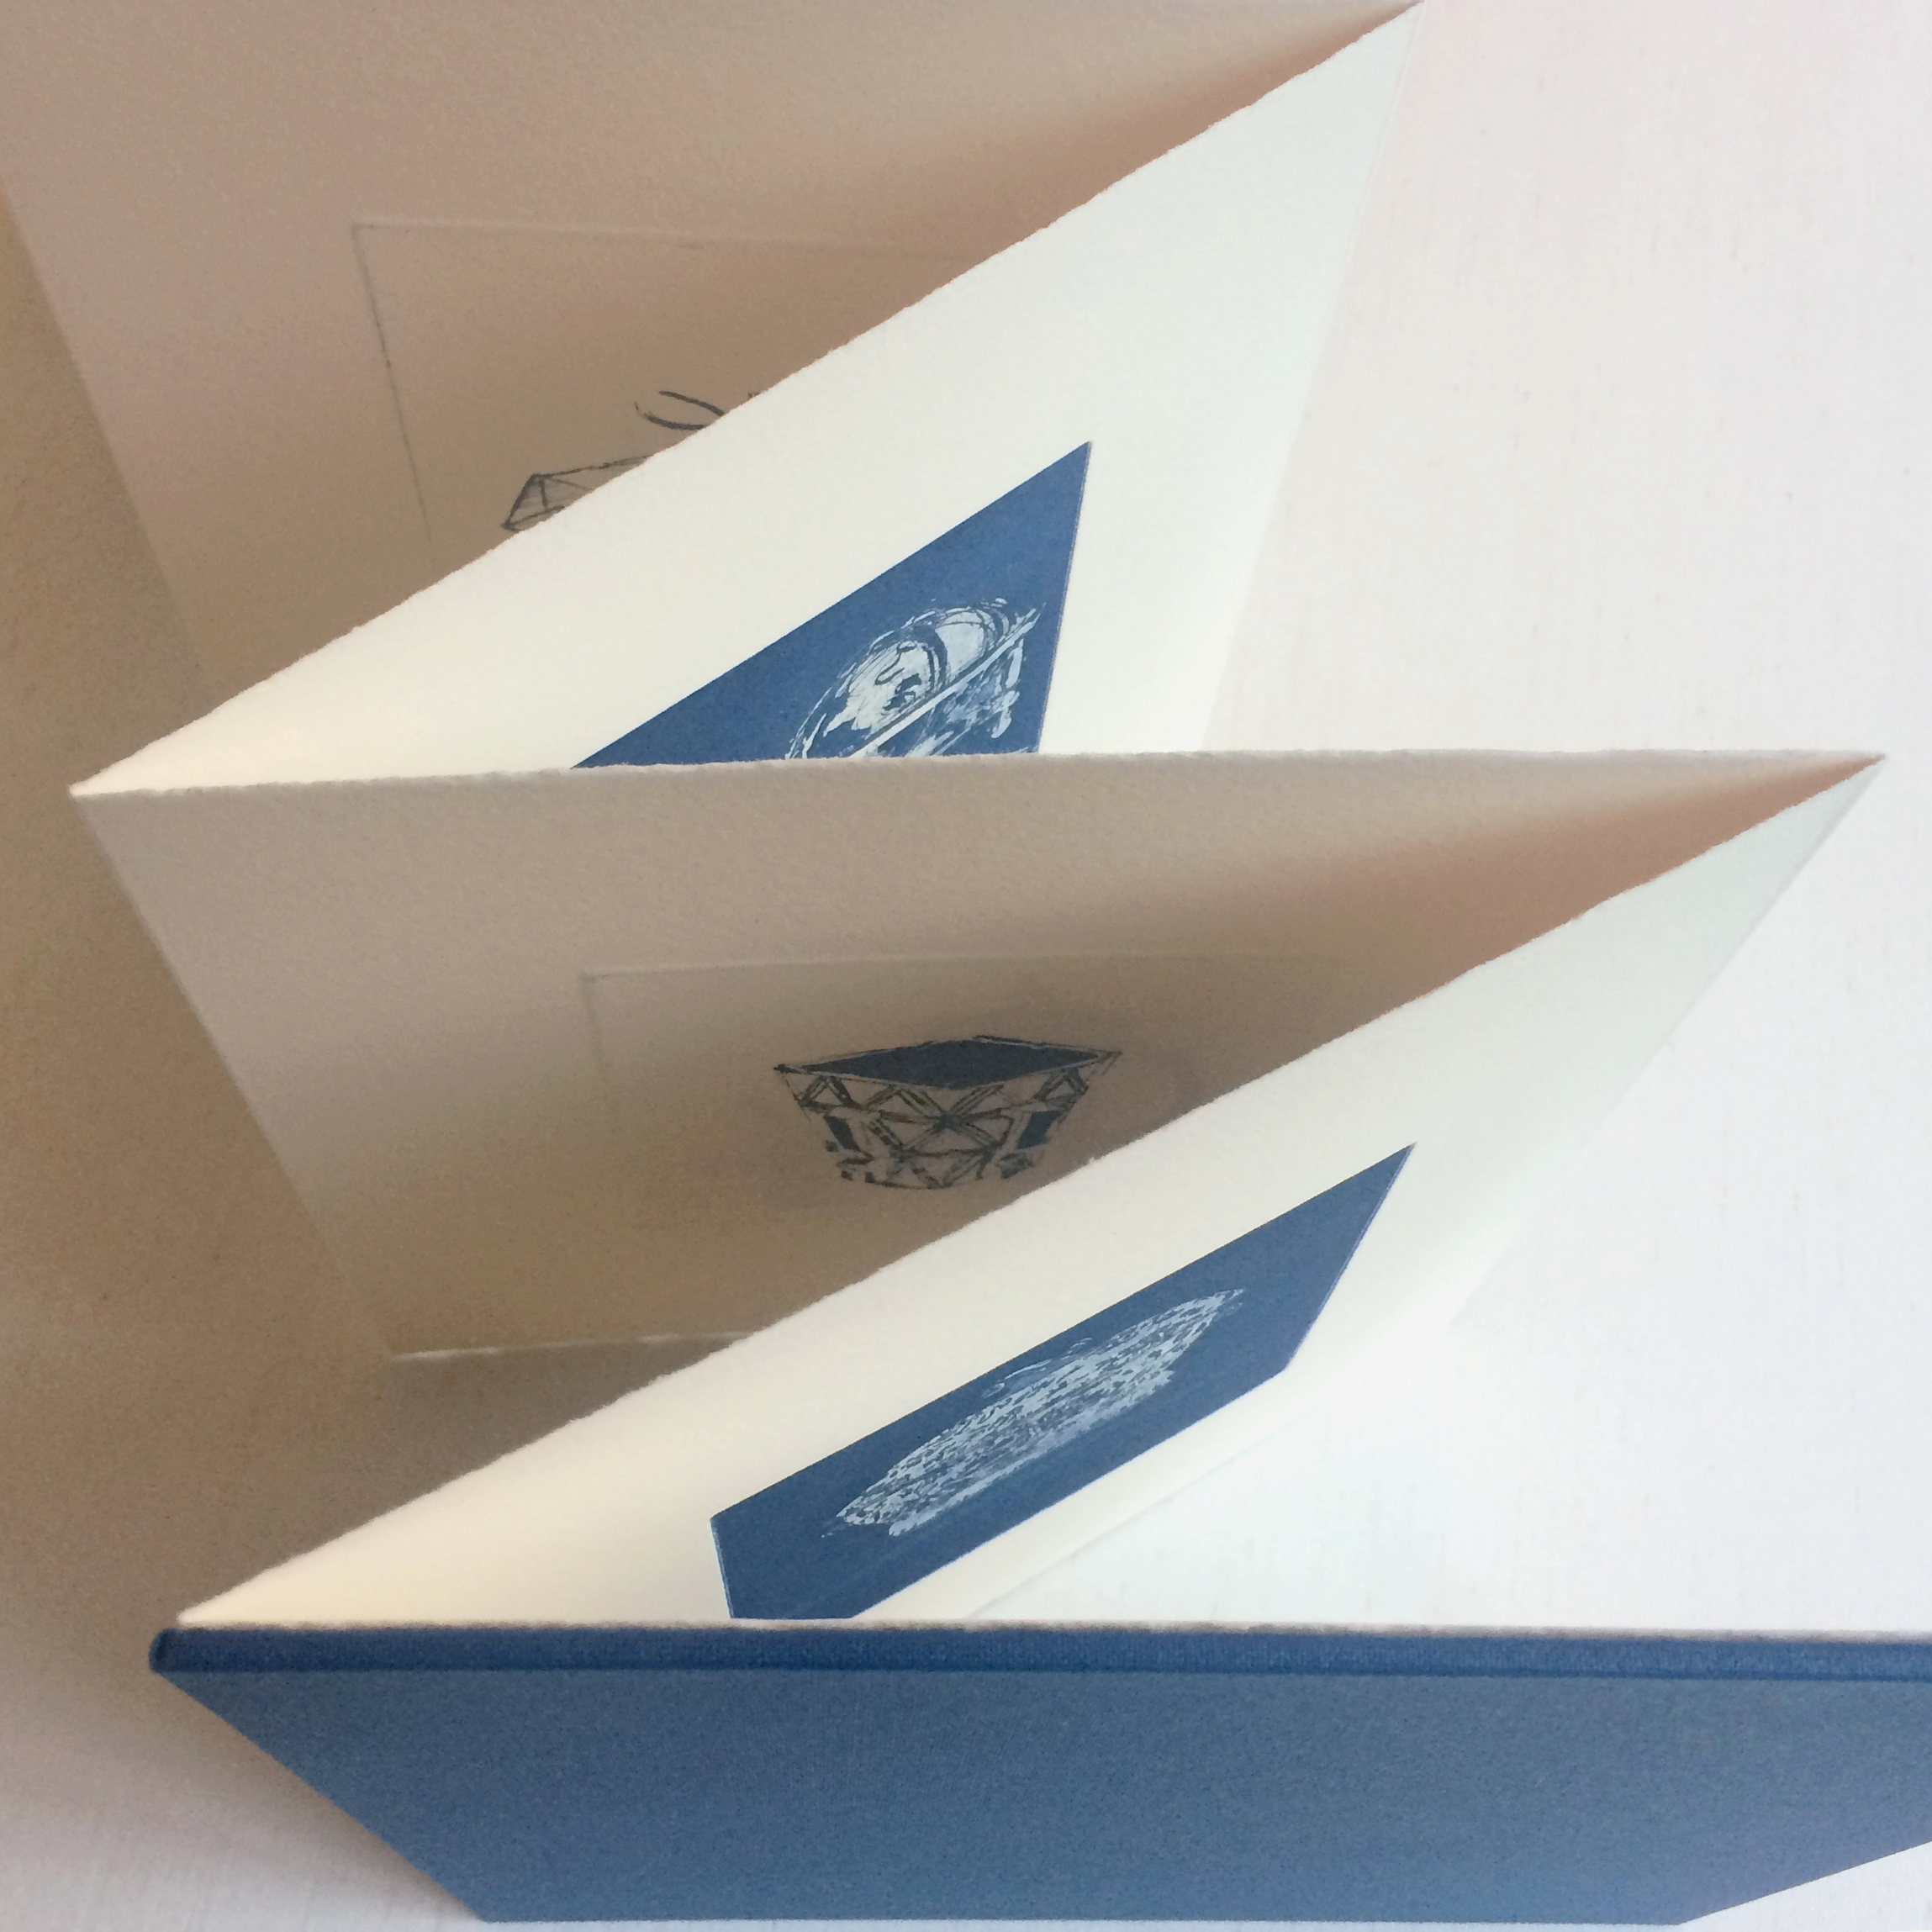 Unique artist's book with navy cover and prints